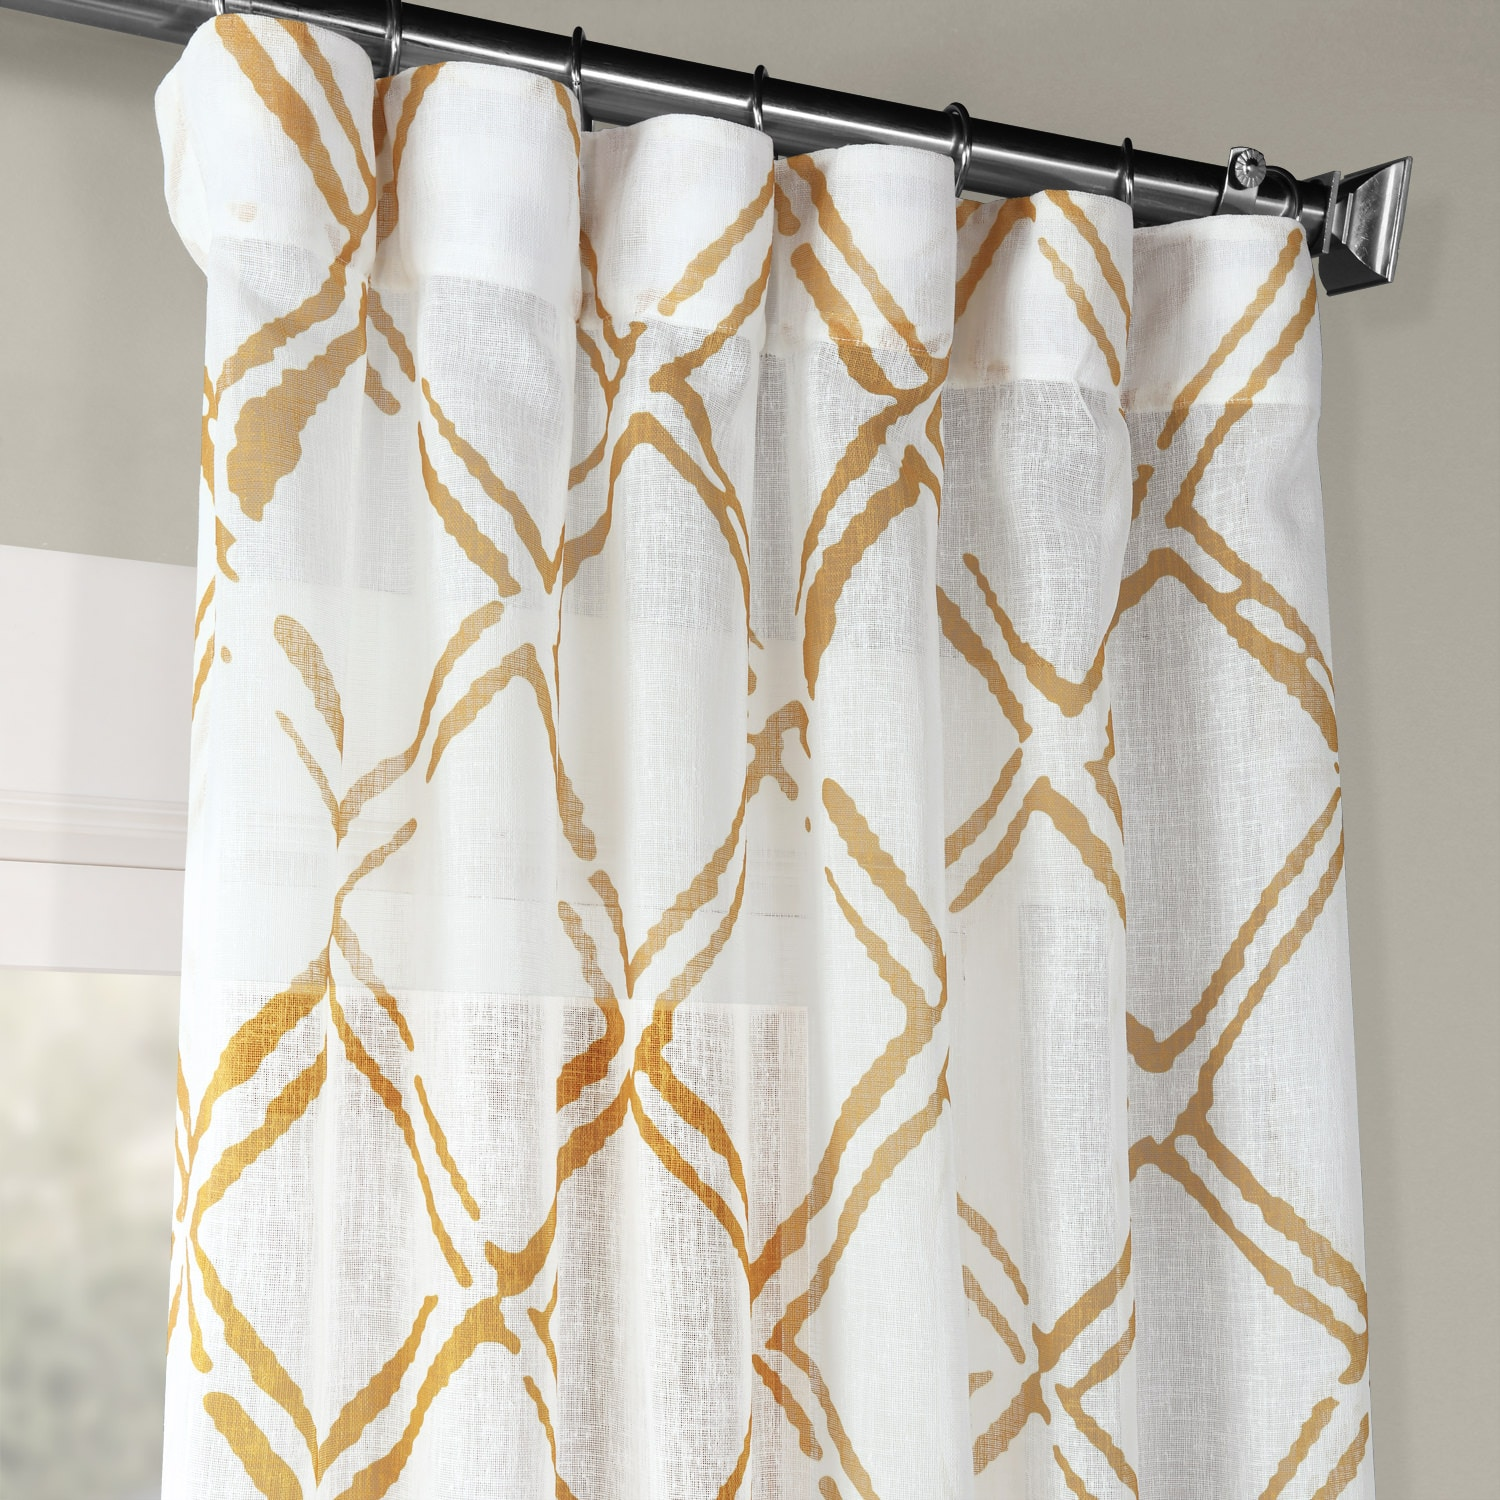 Normandy Gold Printed Faux Linen Sheer Curtain